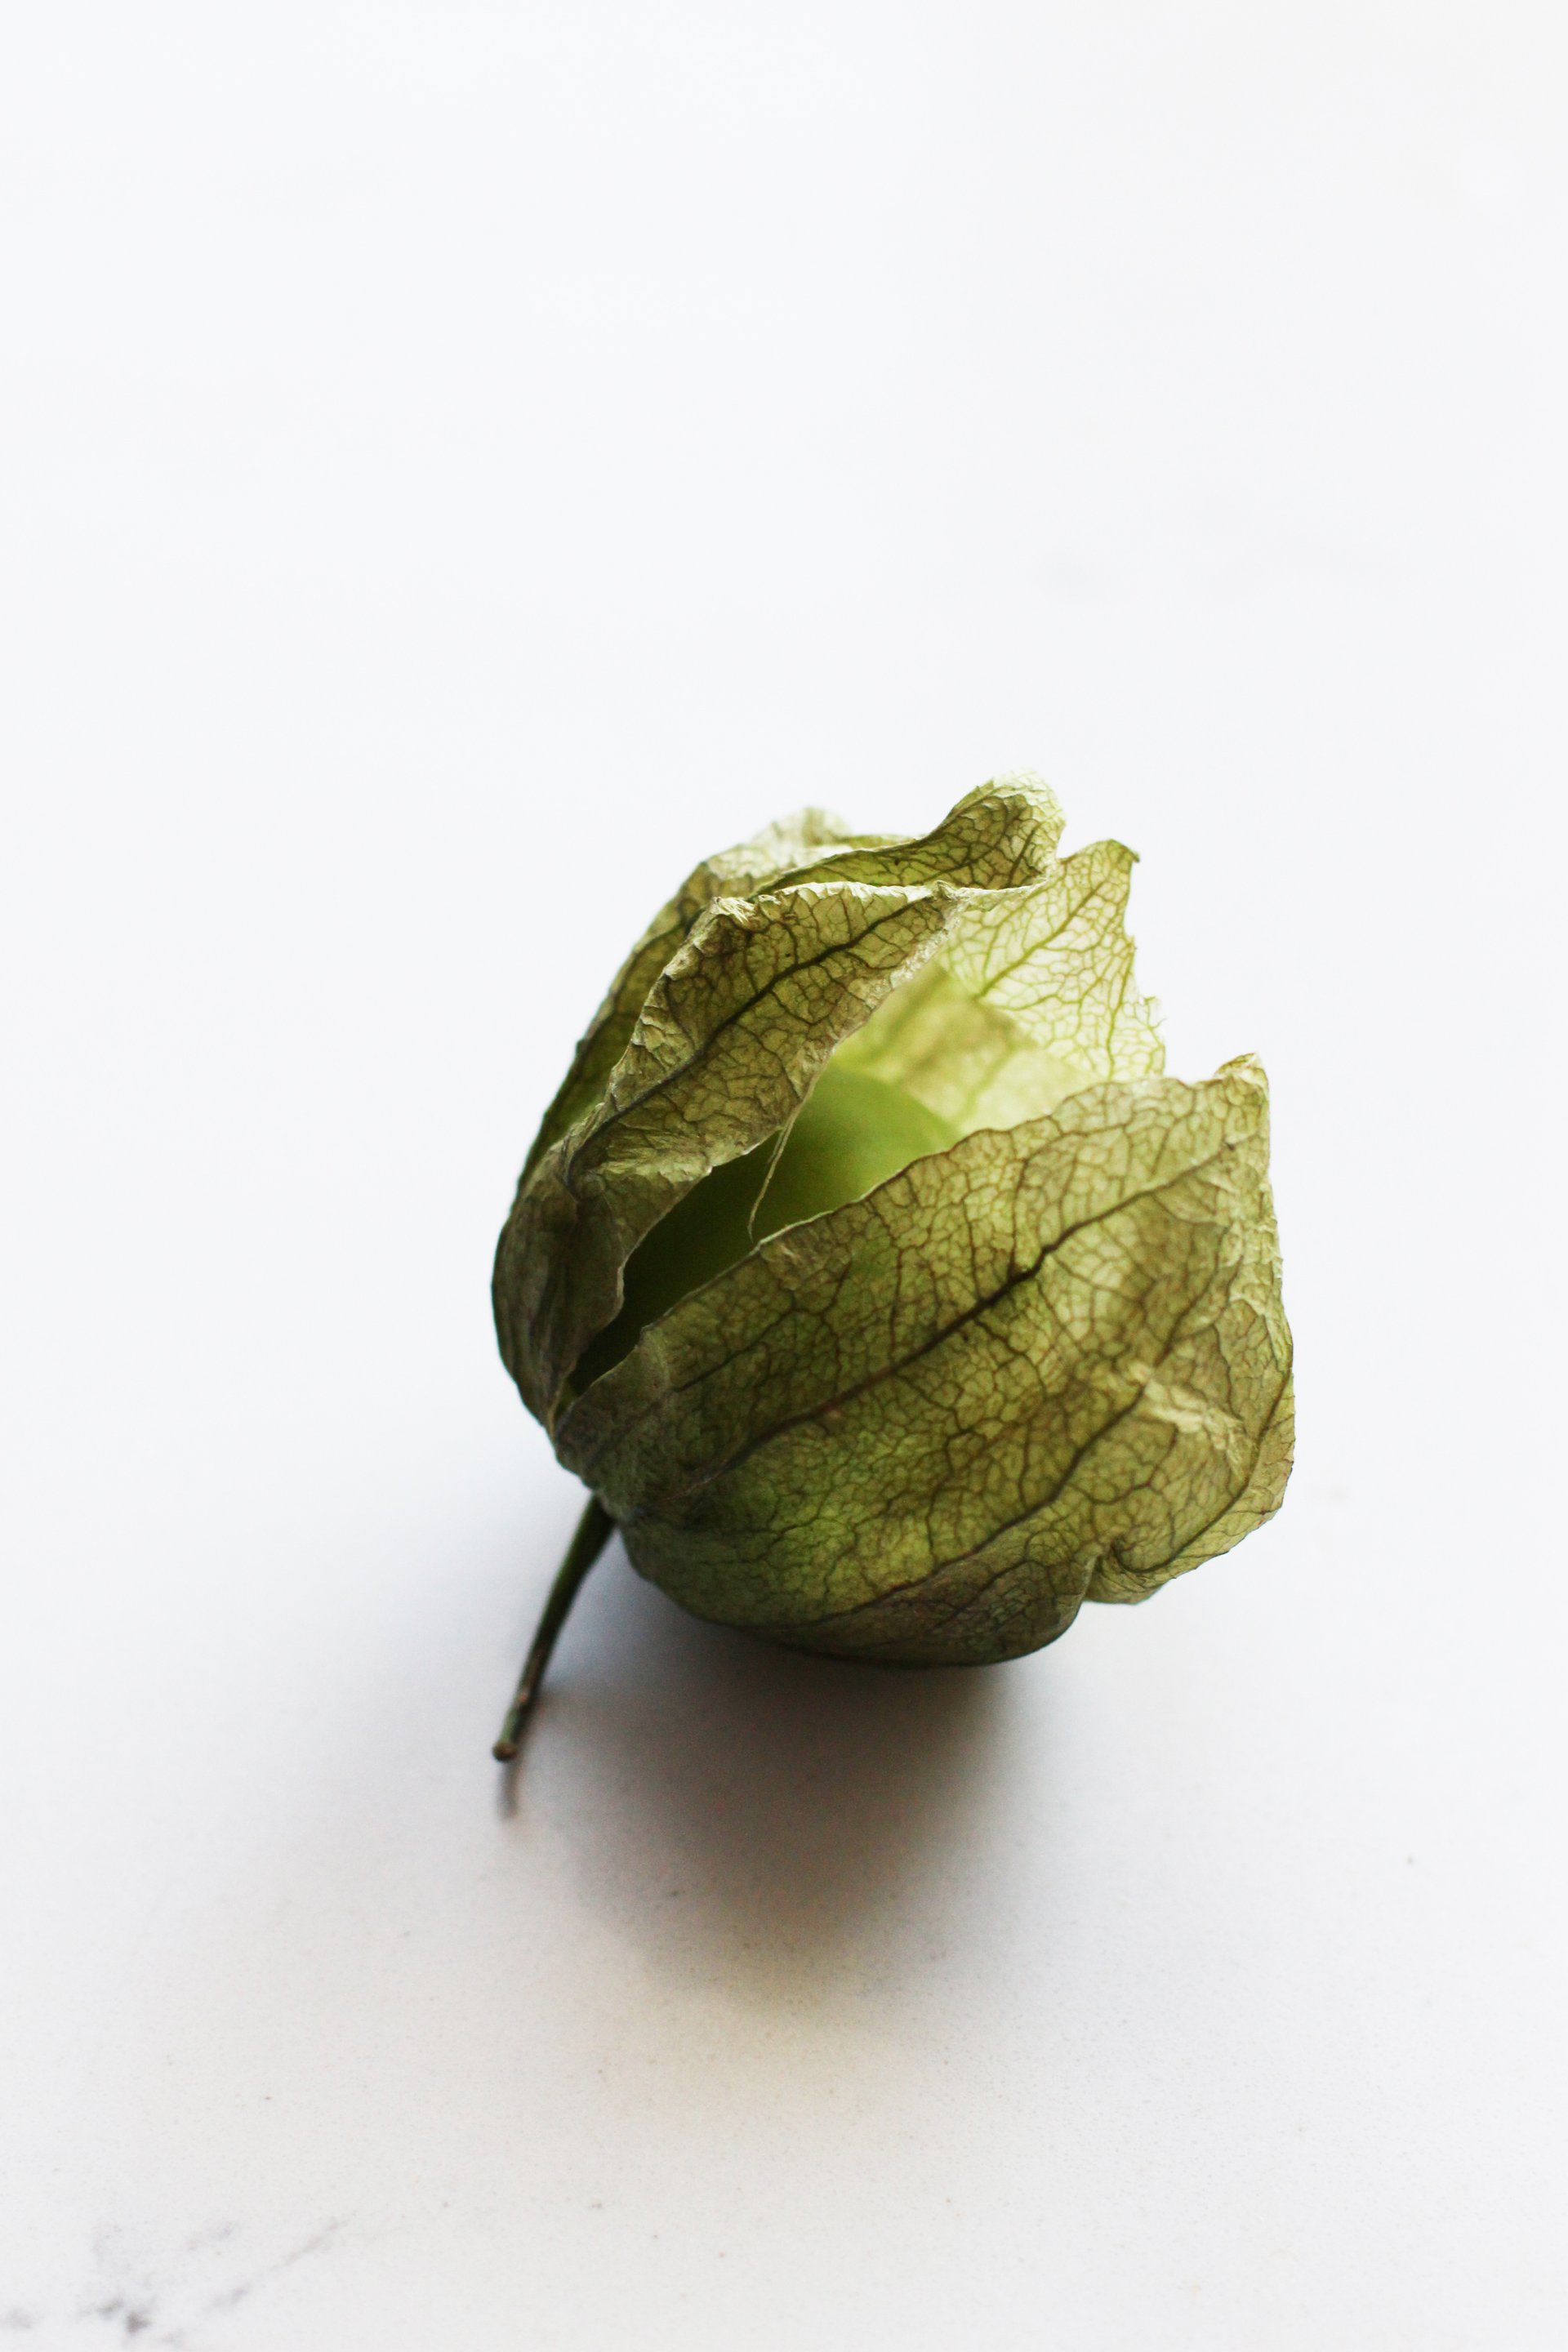 Tomatillo | HonestlyYUM